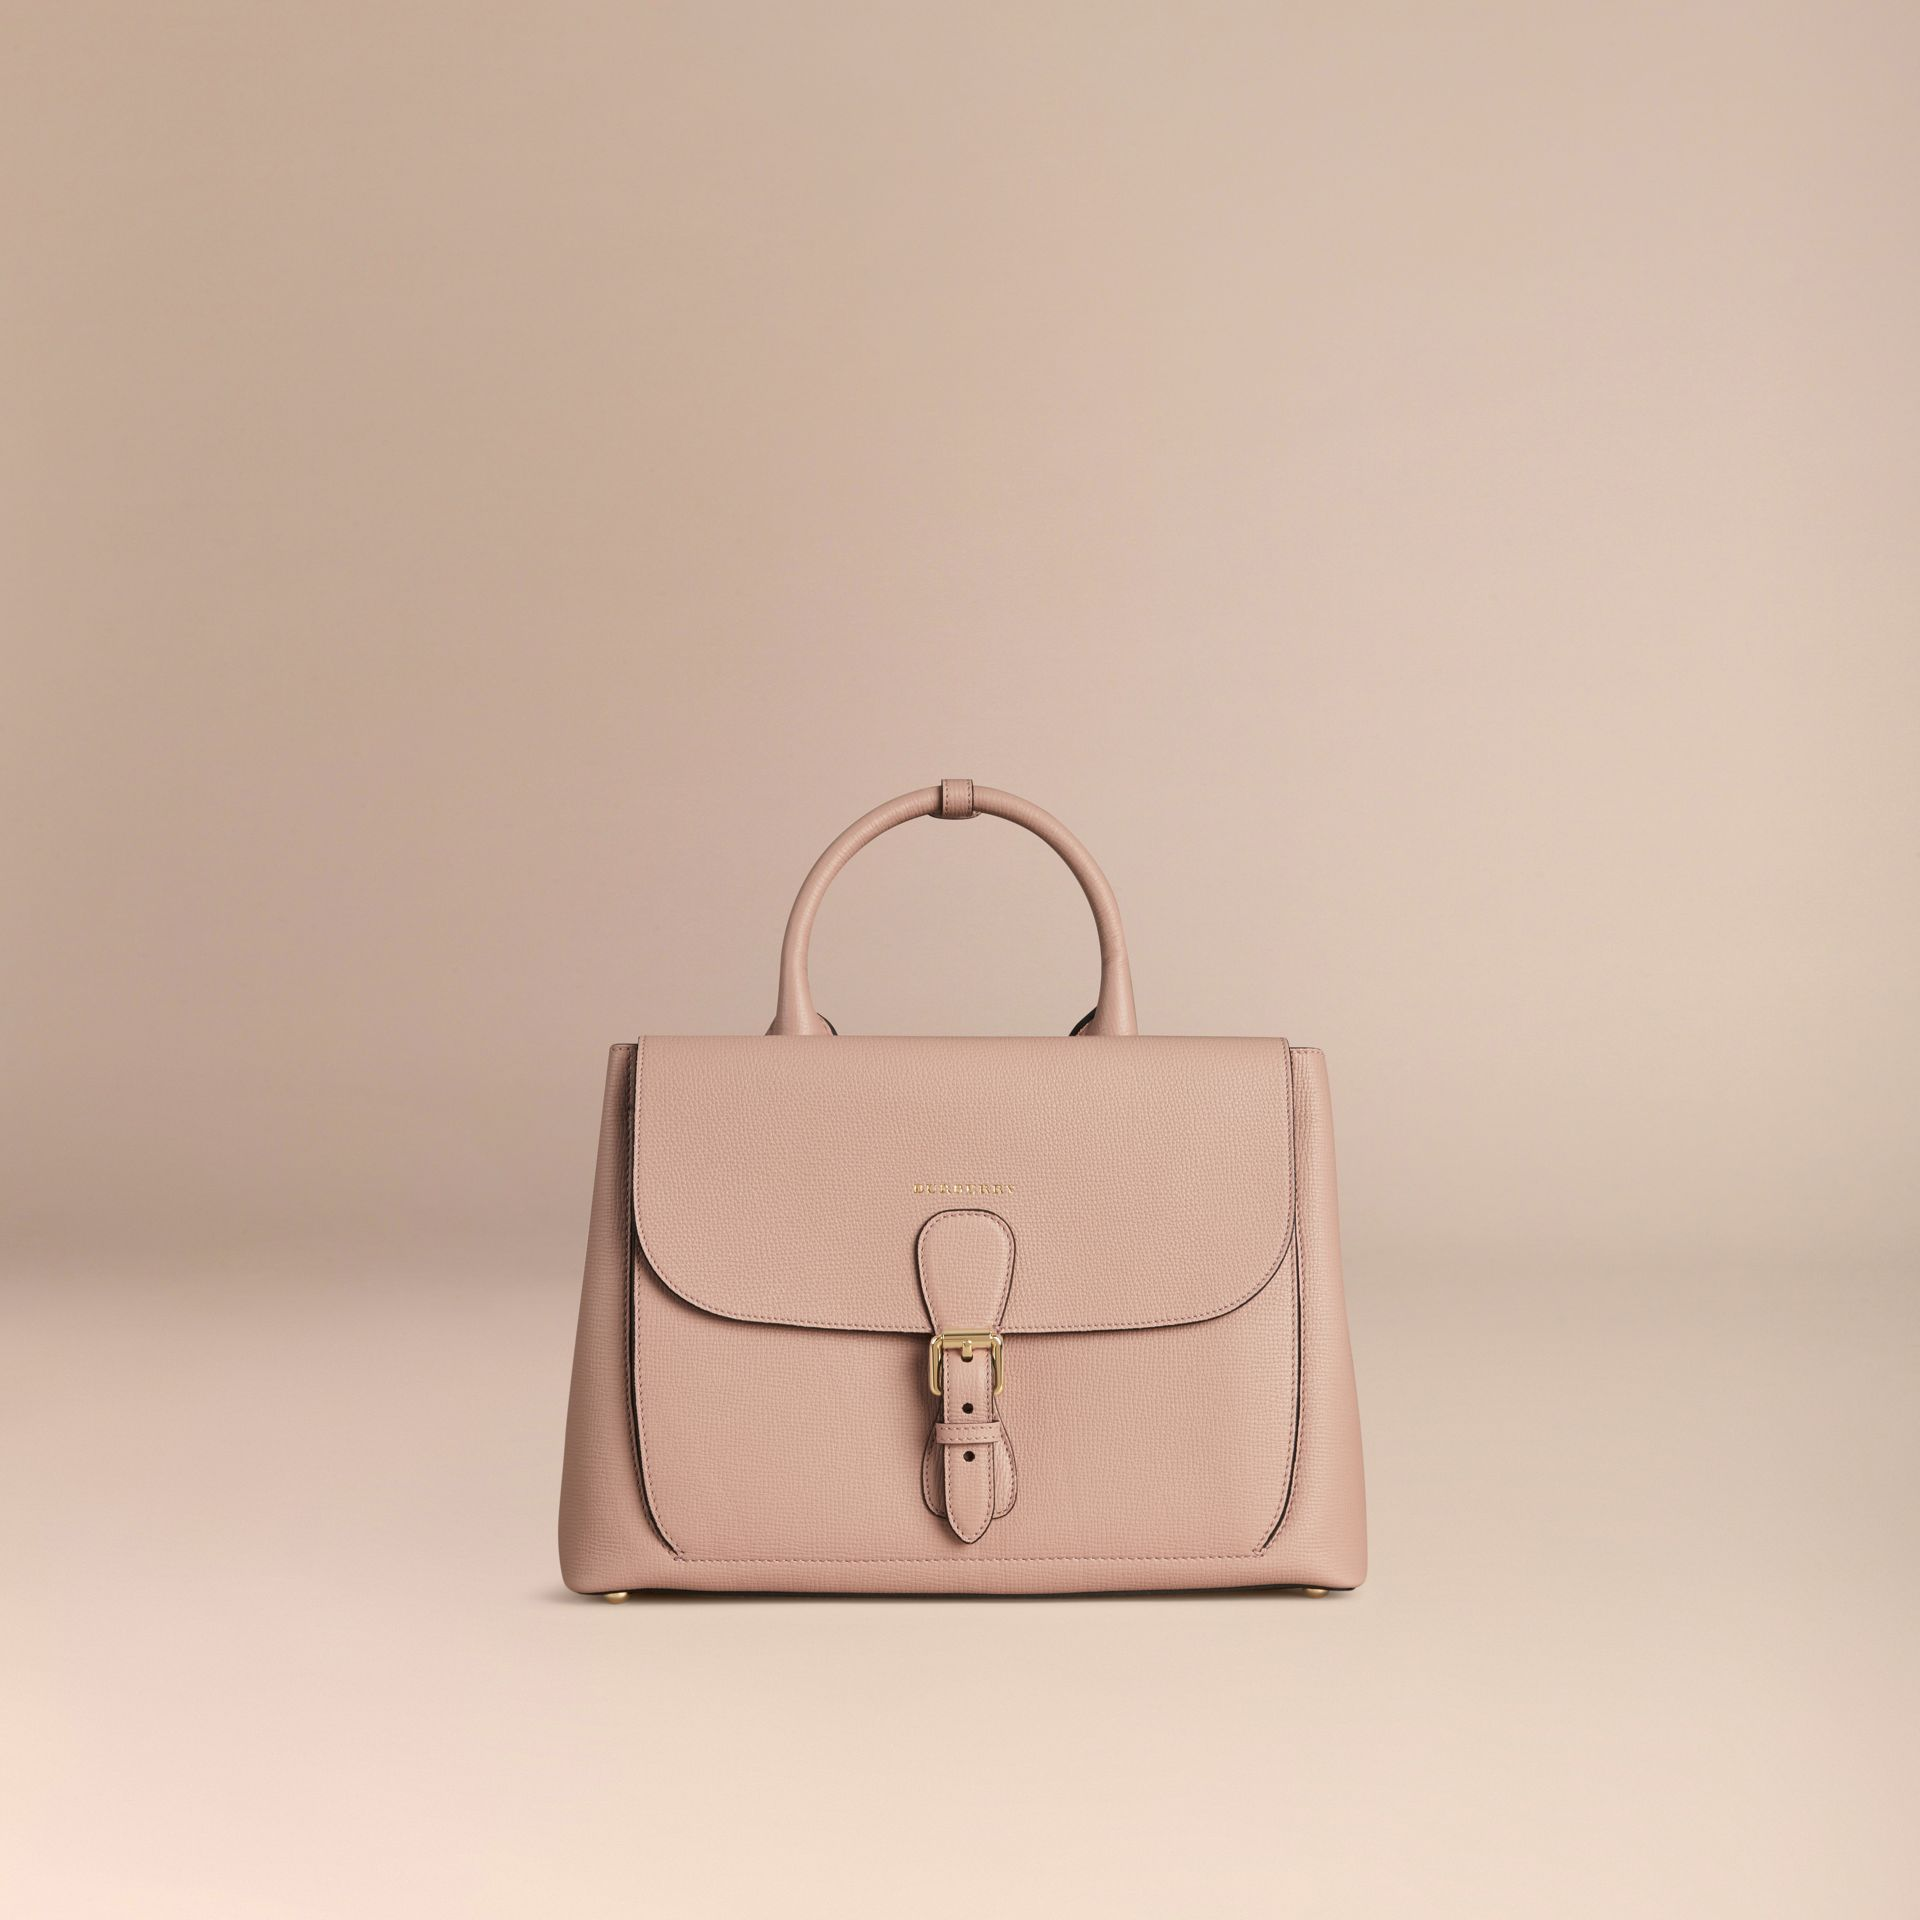 Pale orchid The Medium Saddle Bag in Grainy Bonded Leather Pale Orchid - gallery image 7